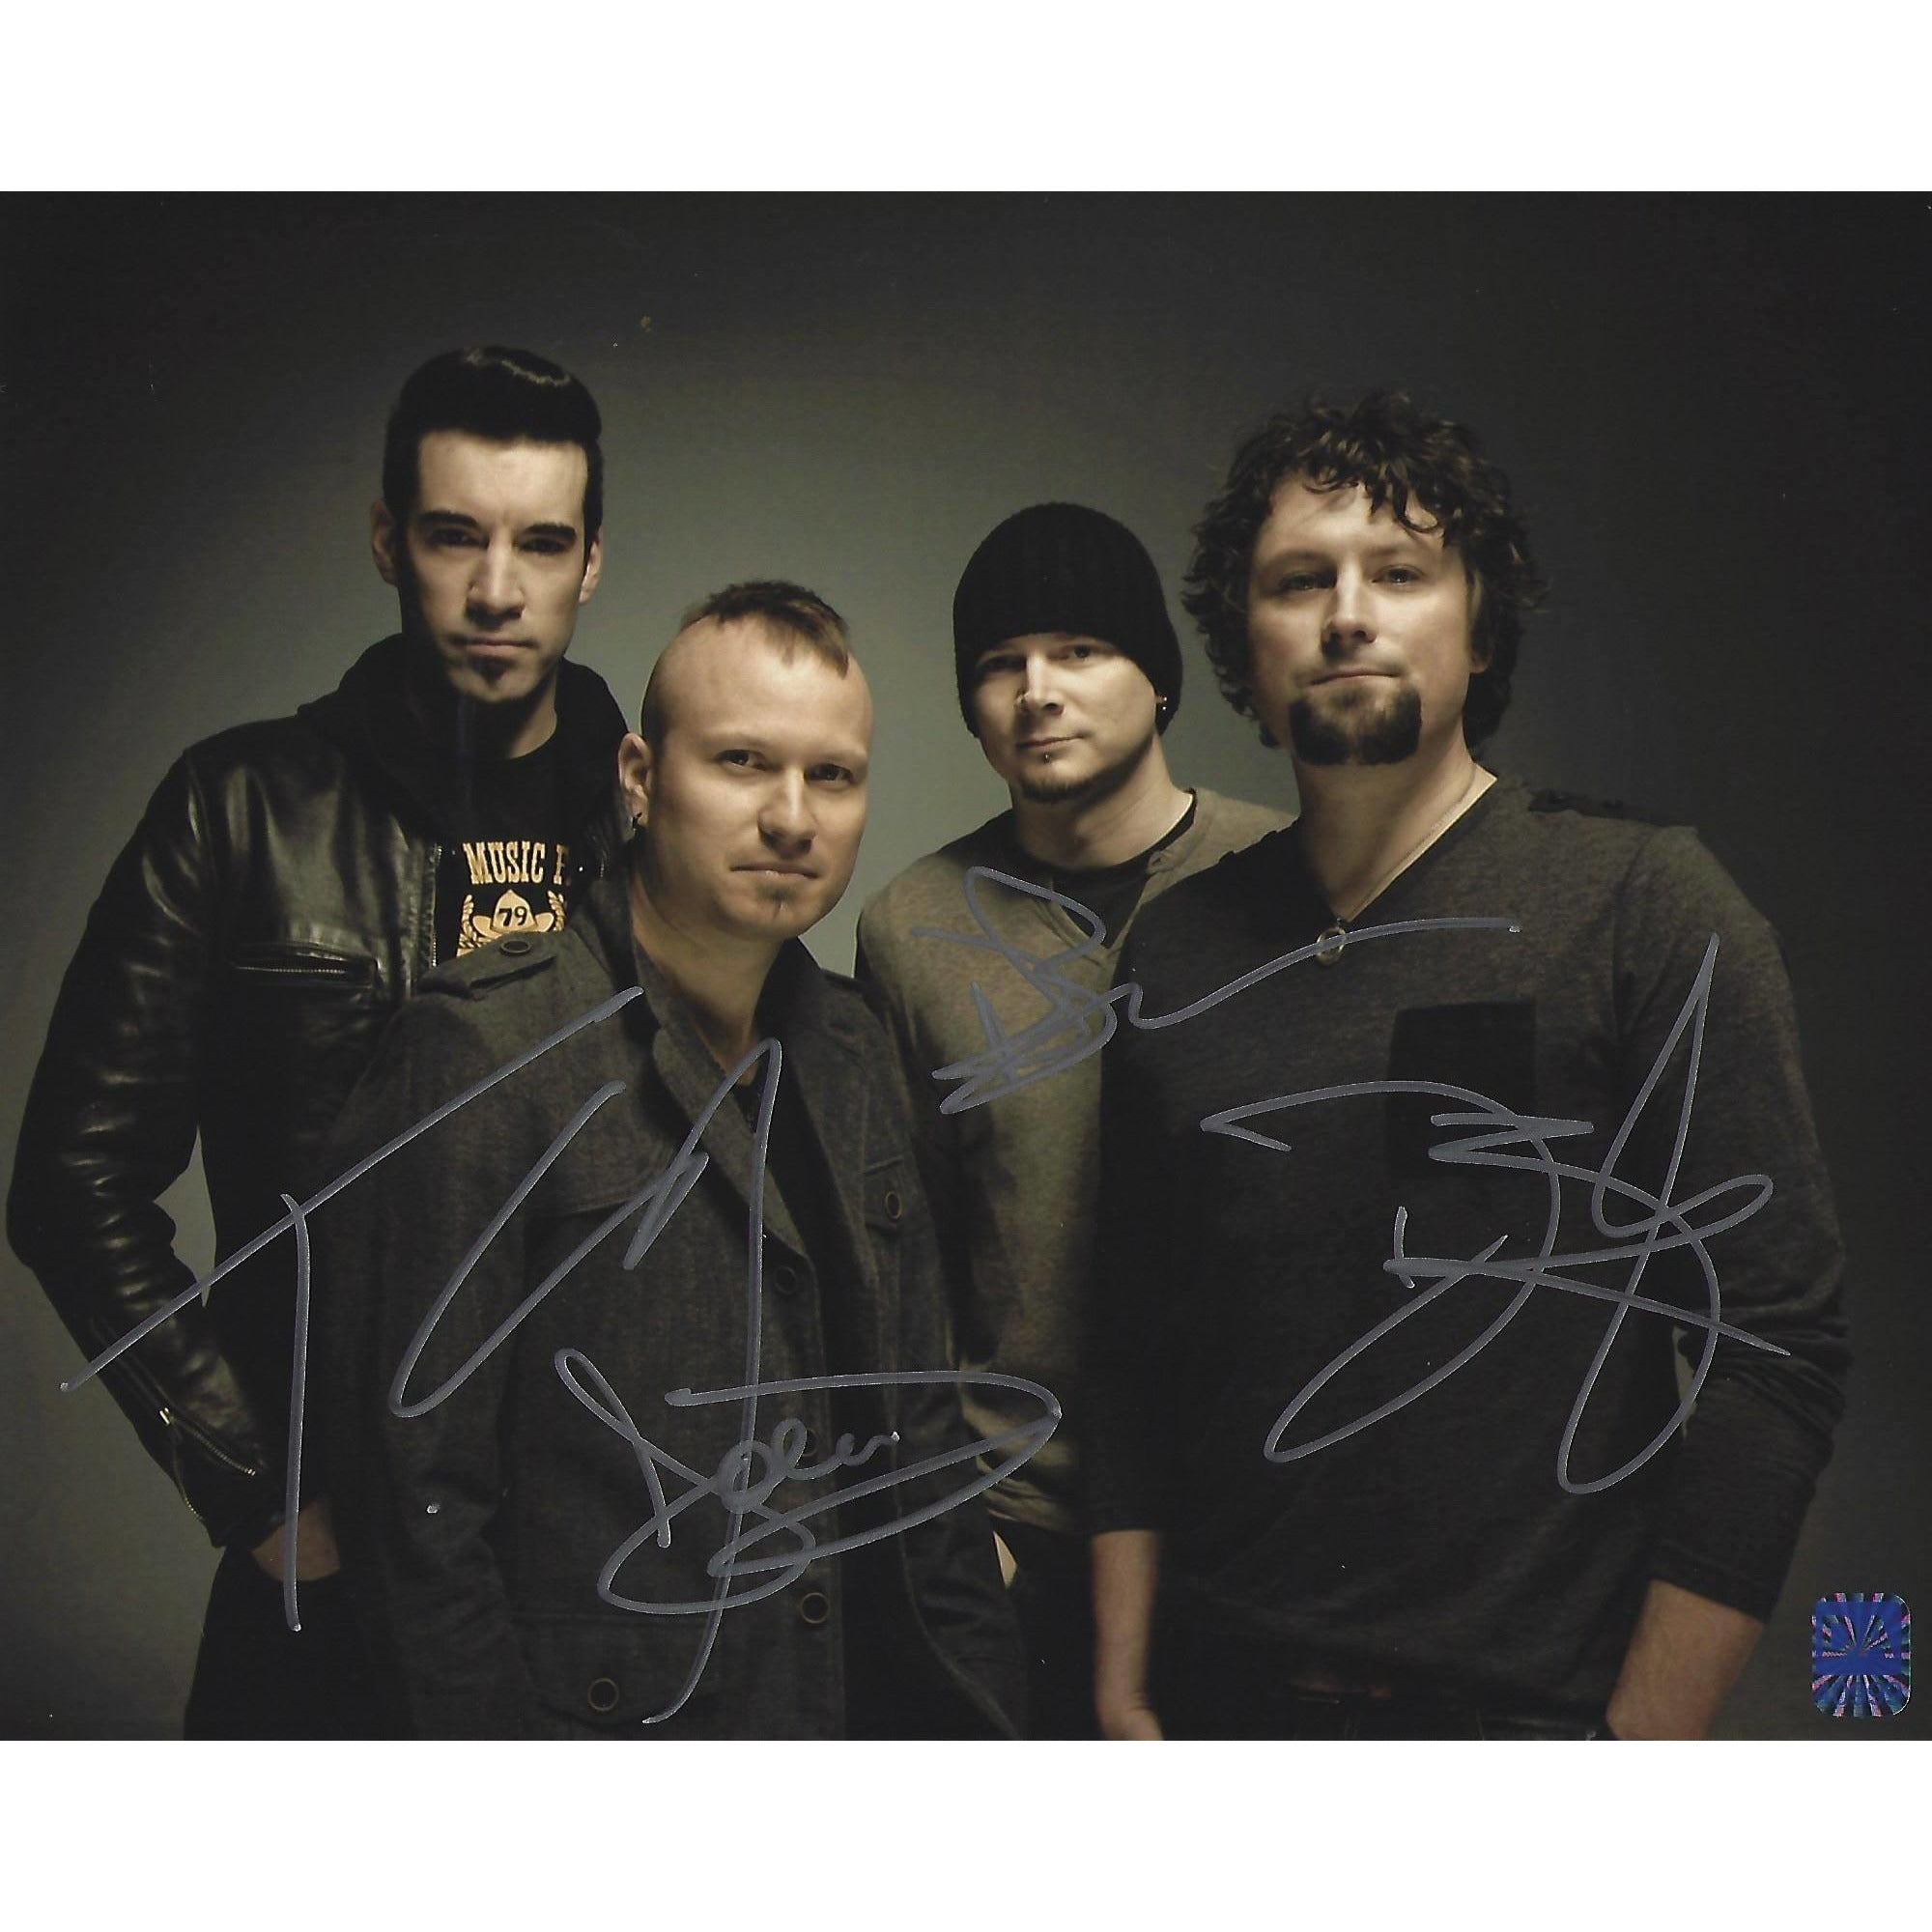 Theory Of A Deadman Autographed 8x10 Band Photo Framed COA Rock